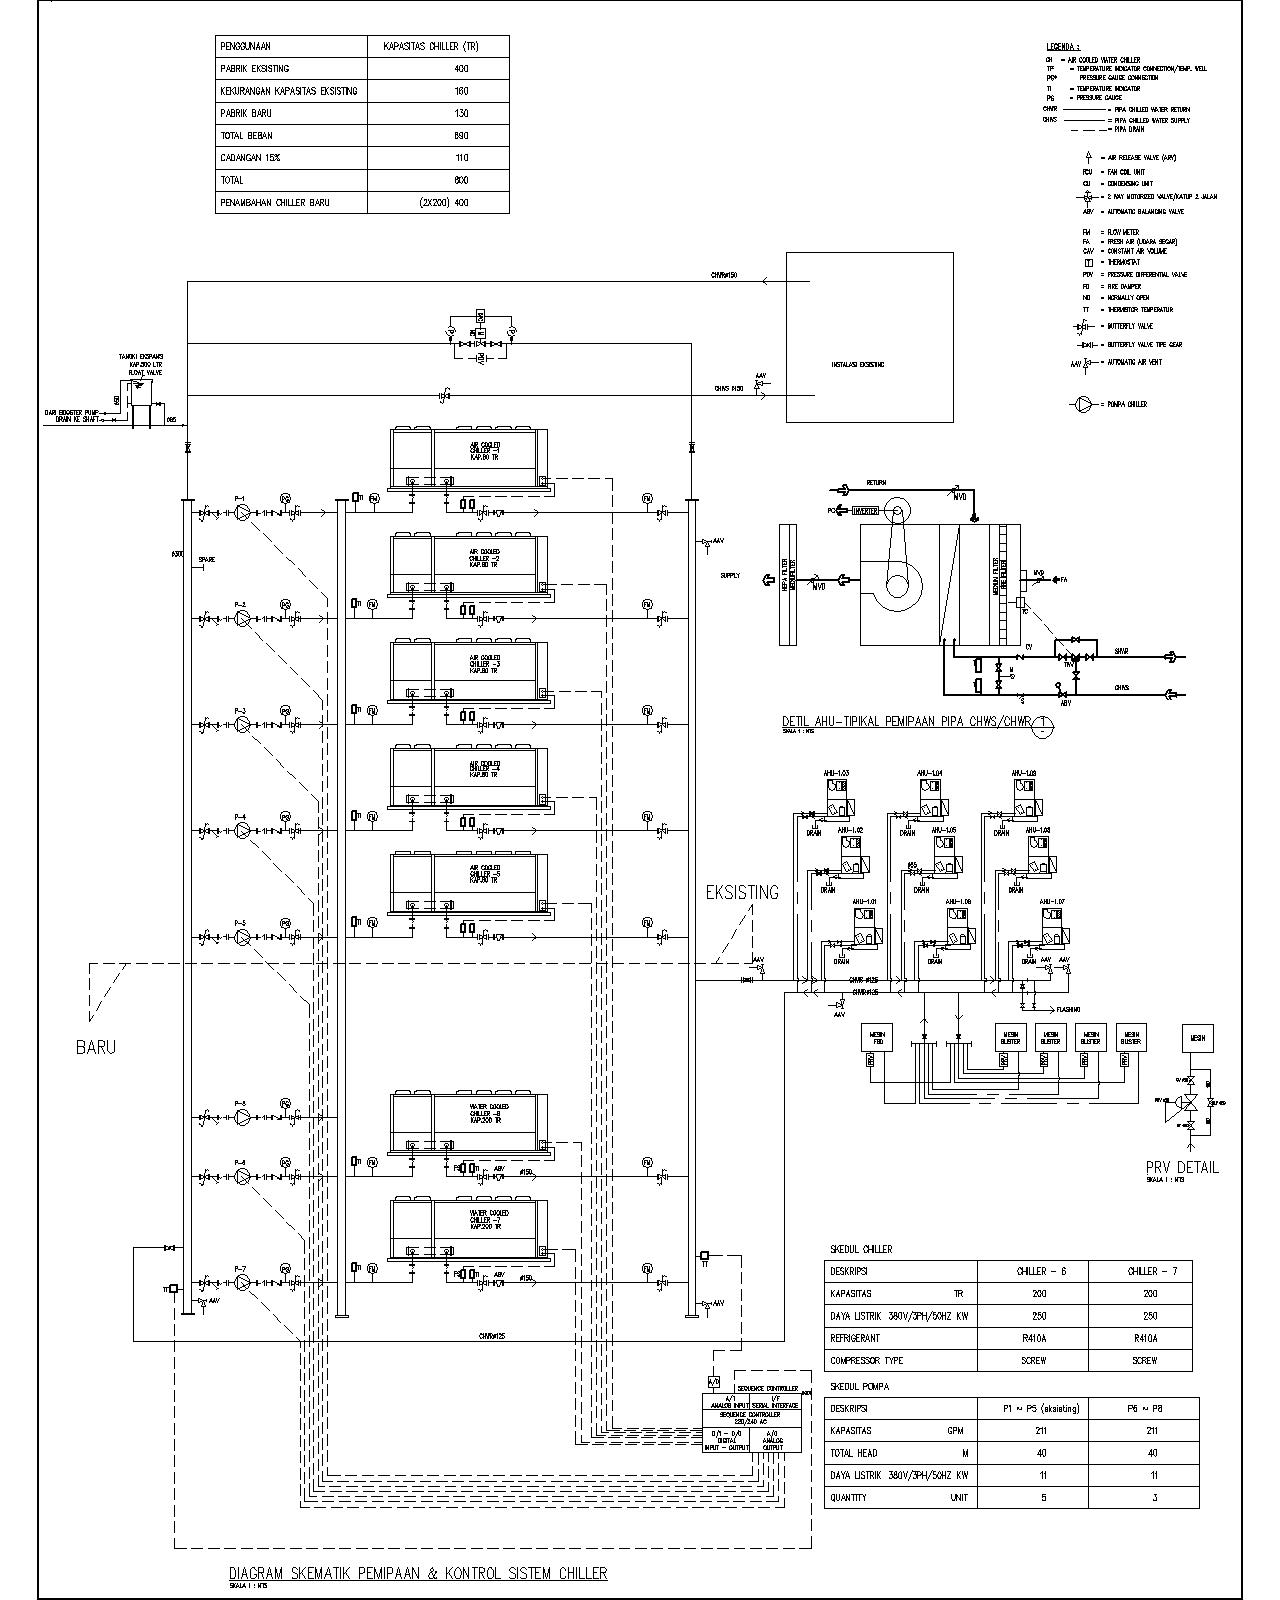 Water Cooled Chiller Schematic Wire Center And Logic Gate Circuit Diagram Tradeoficcom Building Utilities Rh Buildingutilities Blogspot Com